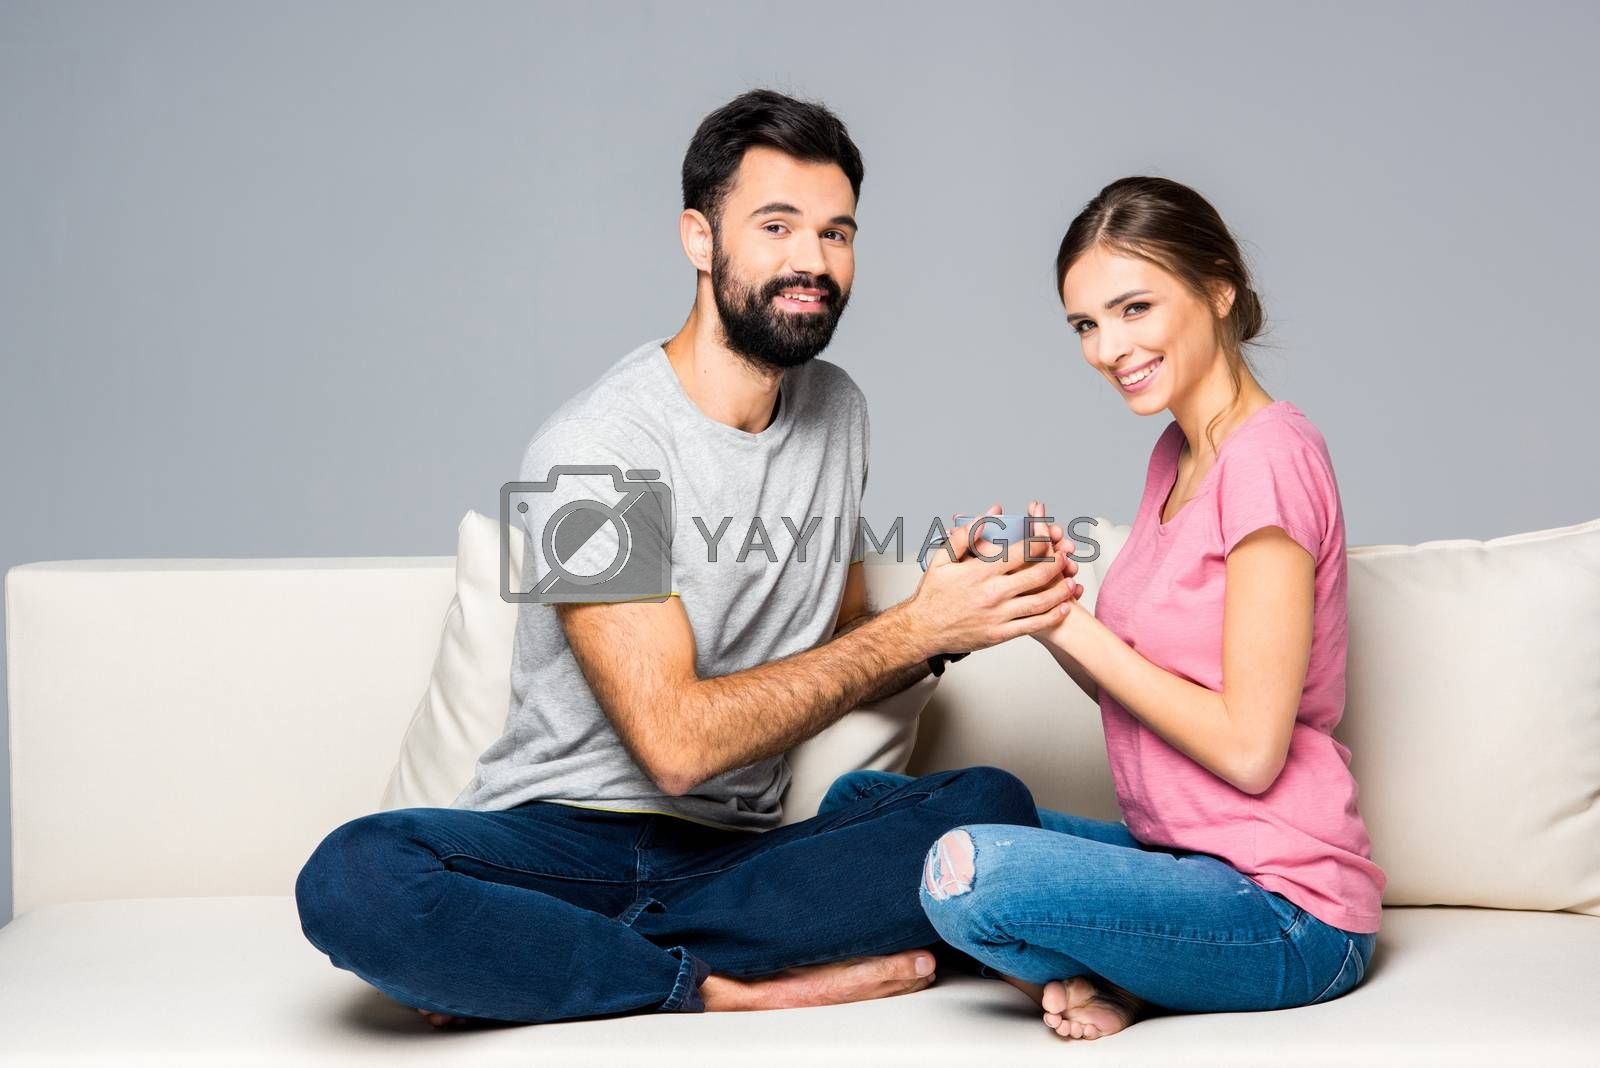 Smiling couple sitting on couch and holding cup